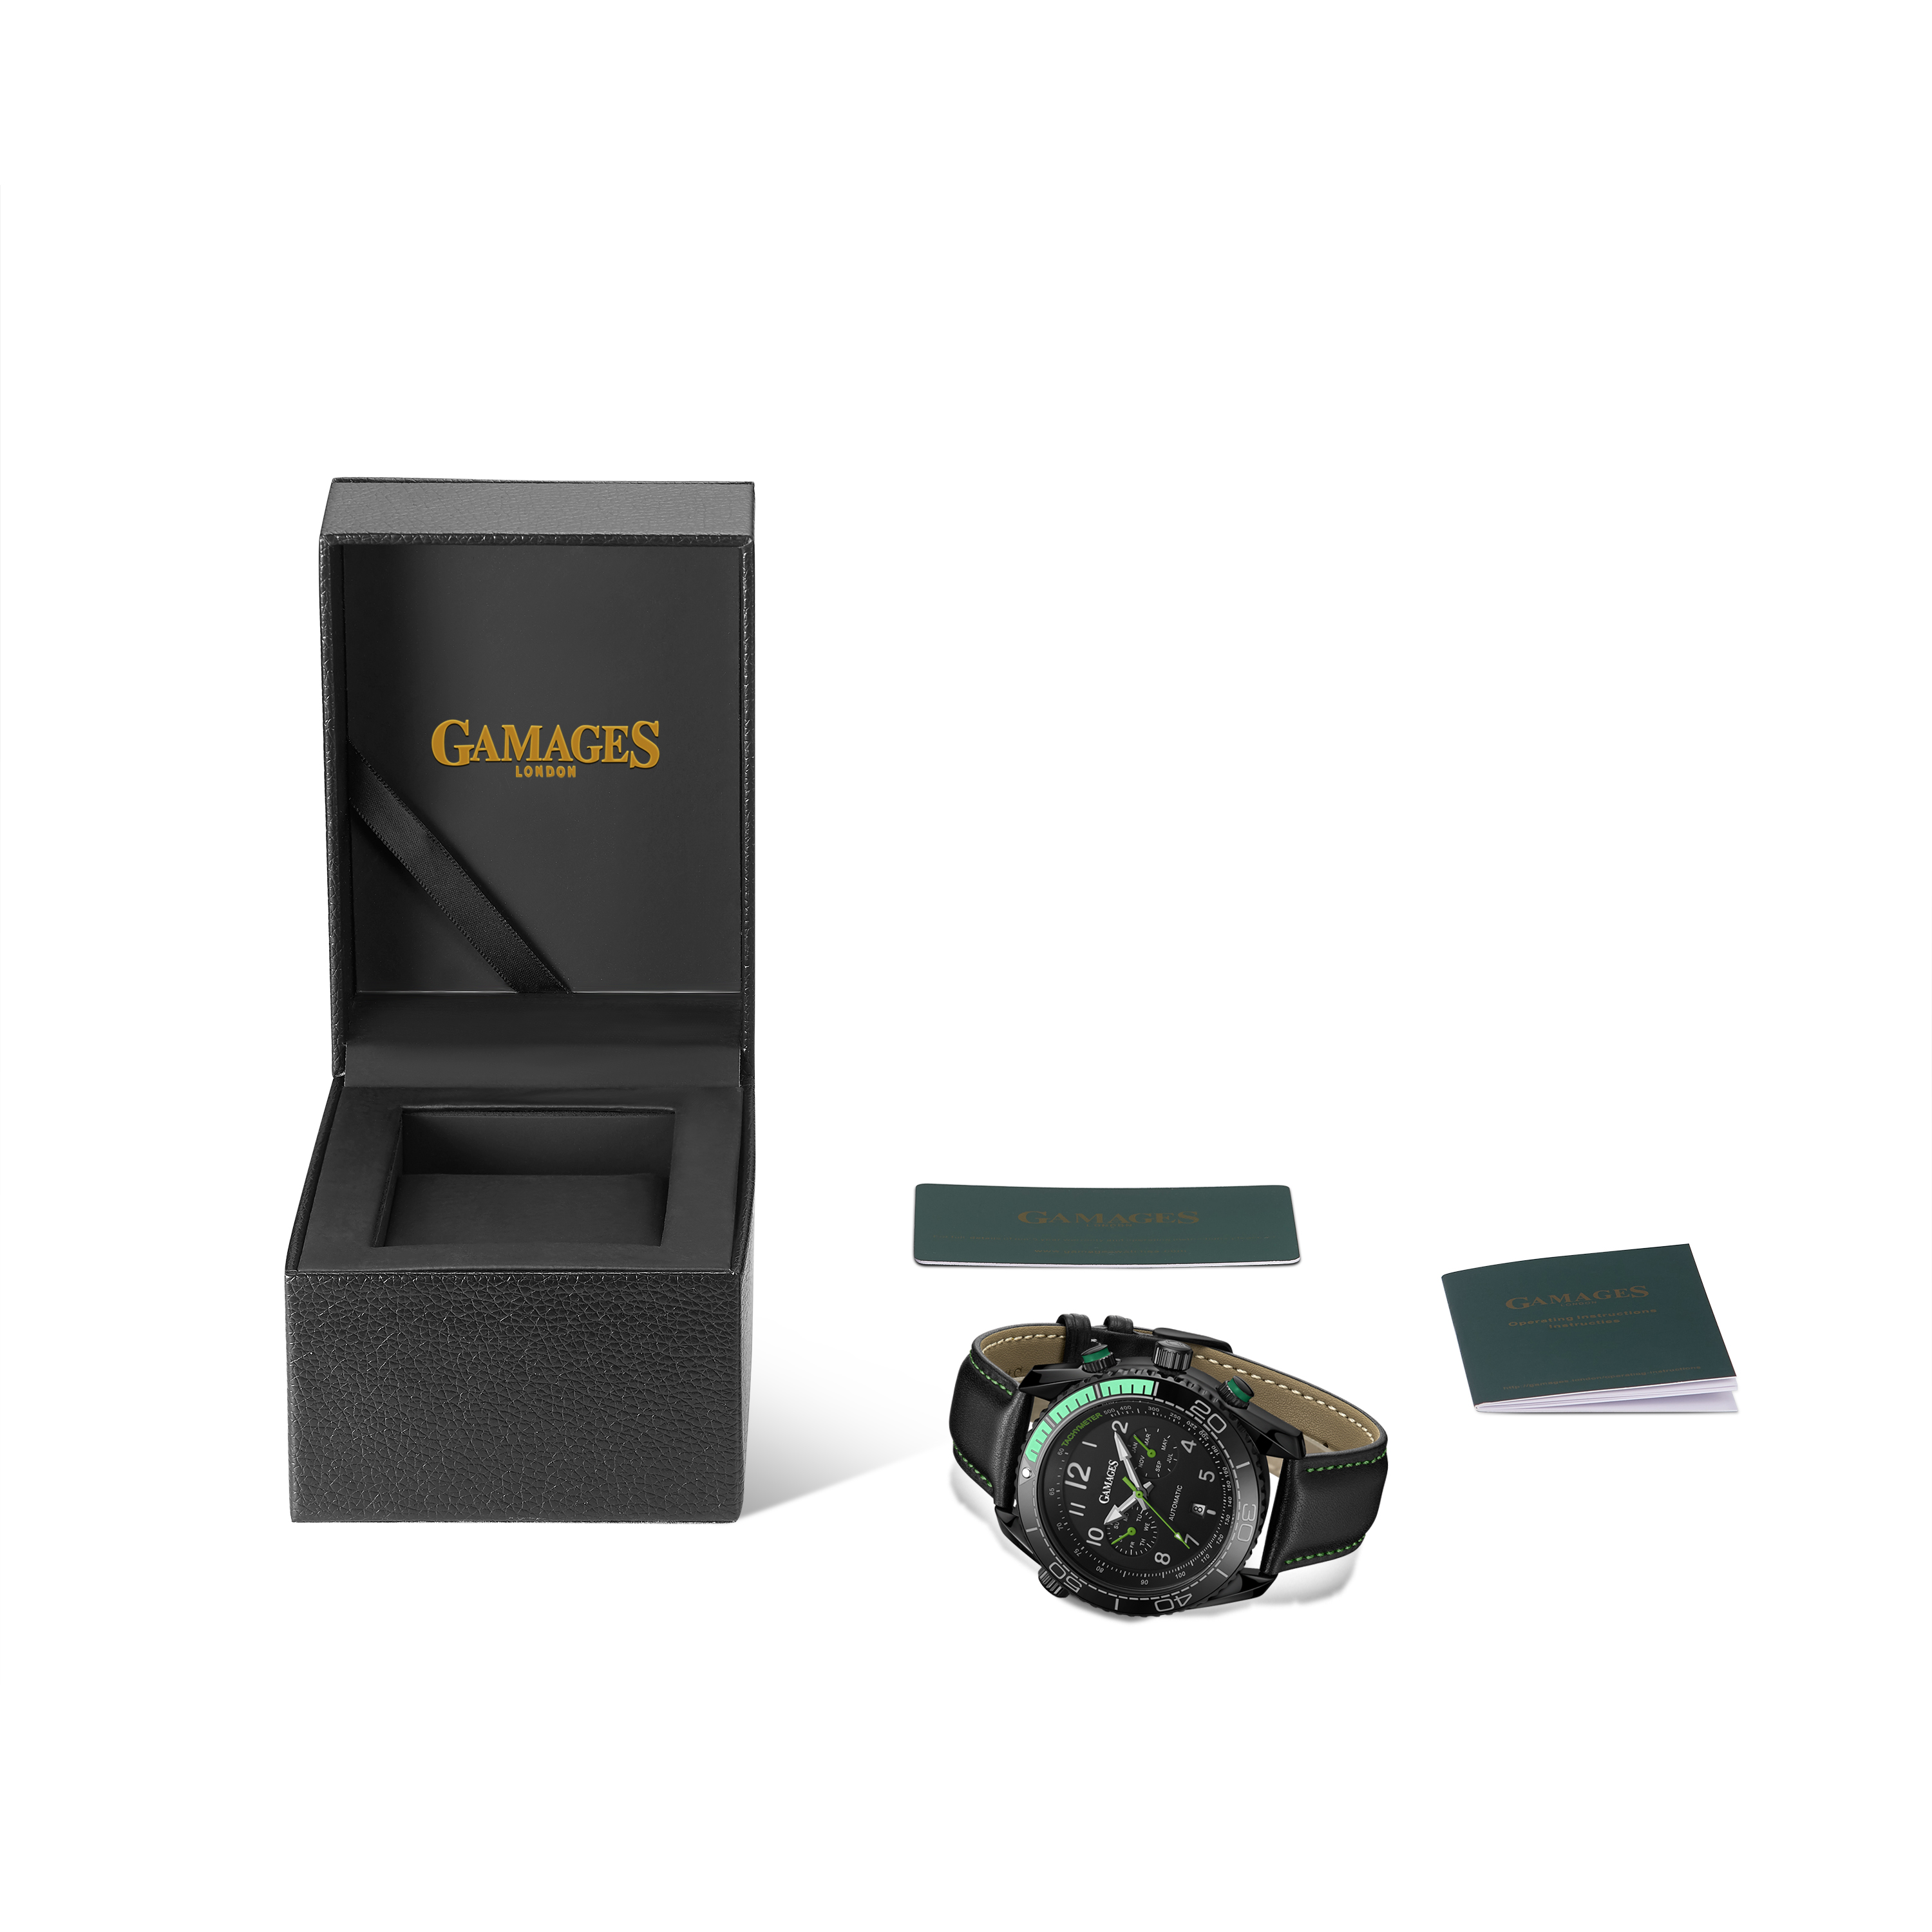 Limited Edition Hand Assembled Gamages Supreme Automatic Green – 5 Year Warranty & Free Delivery - Image 4 of 6